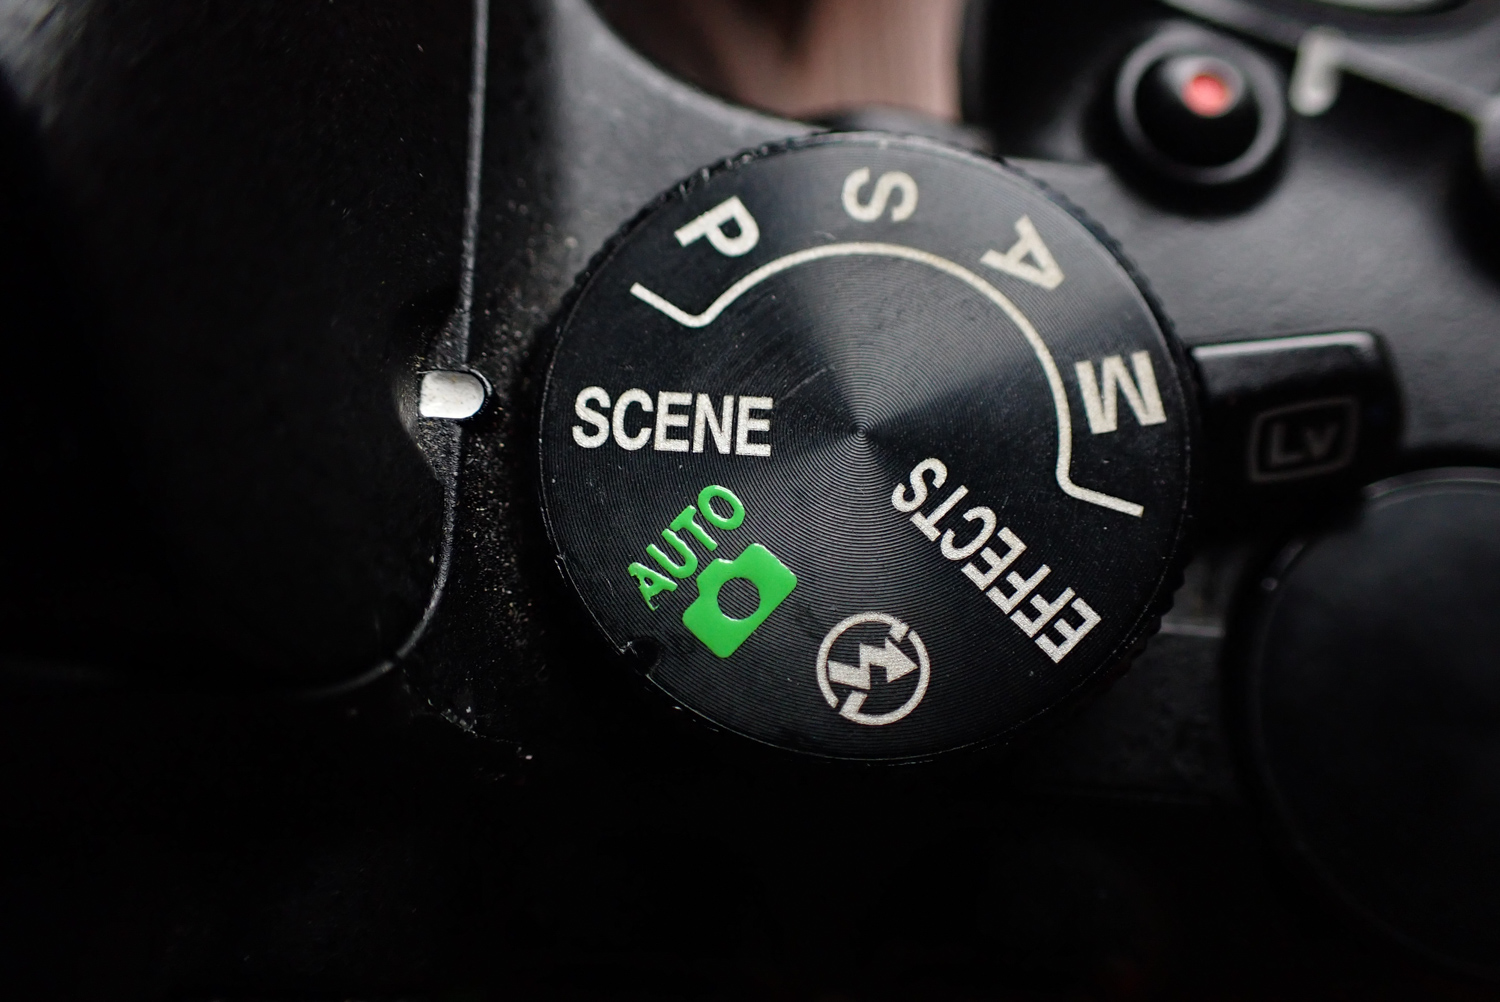 Absolute-Beginners-Guide-to-Camera-Settings-Scene mode